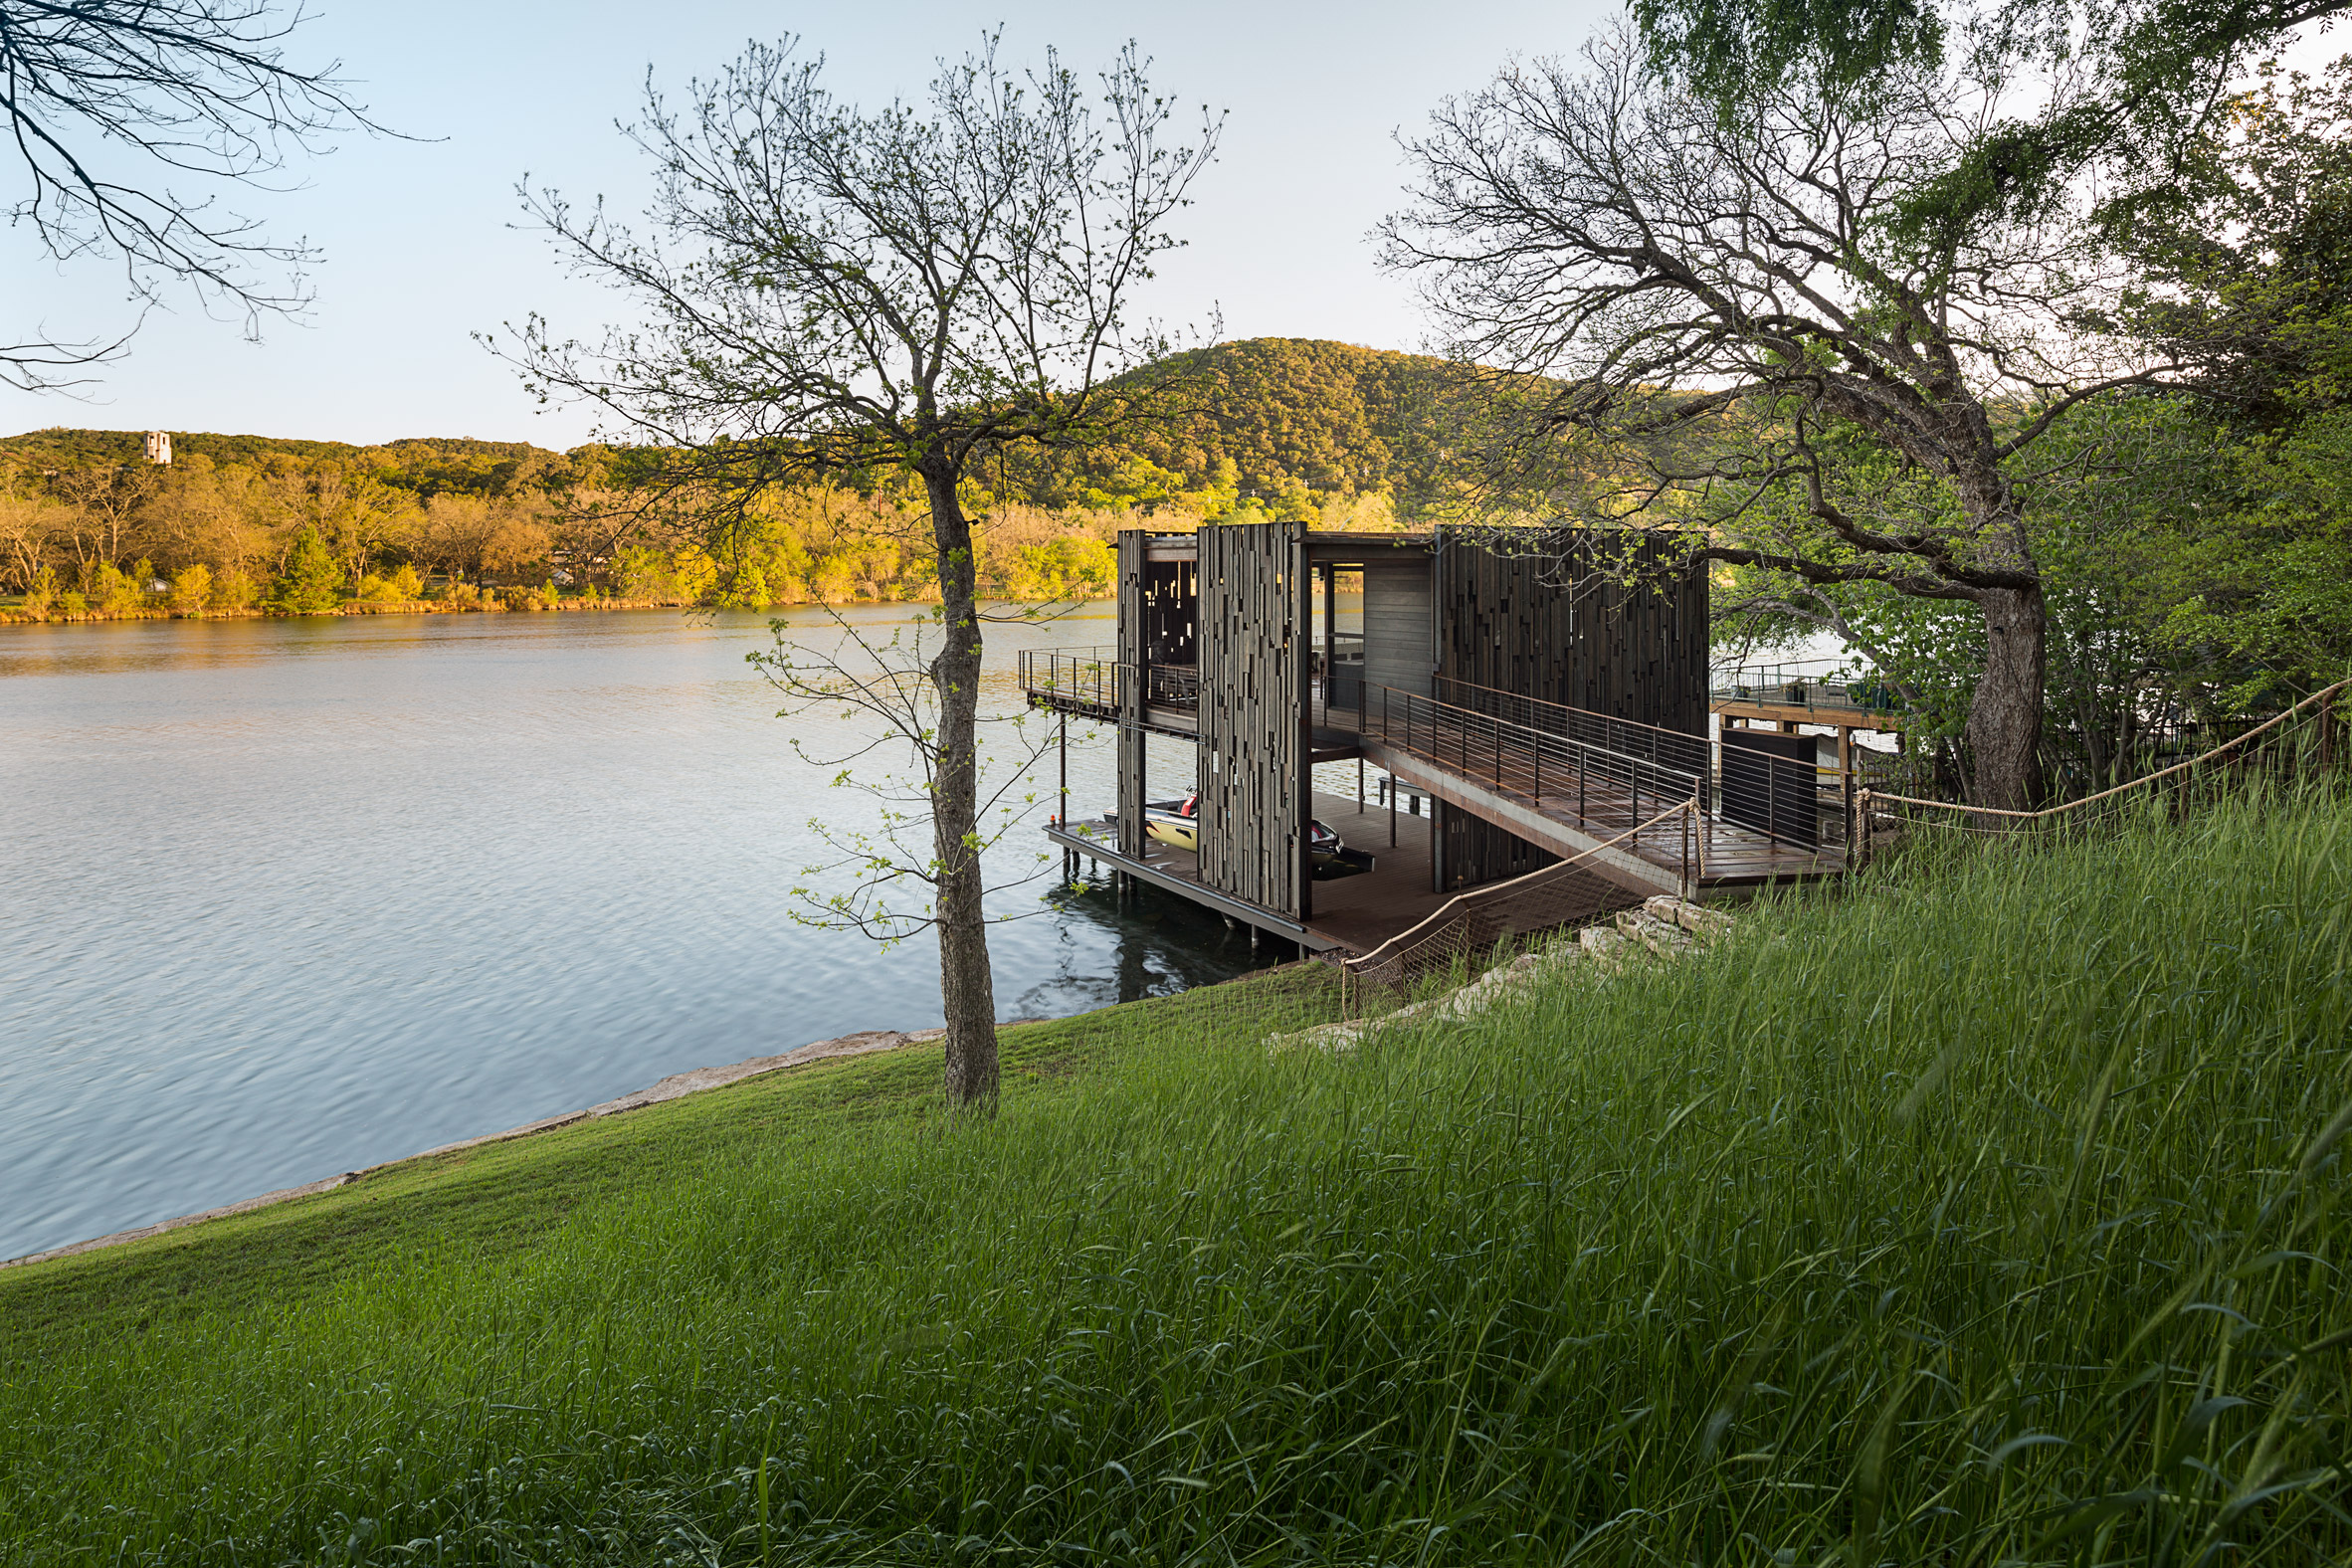 Andersson-Wise assembles new and salvaged materials into rustic Austin boathouse